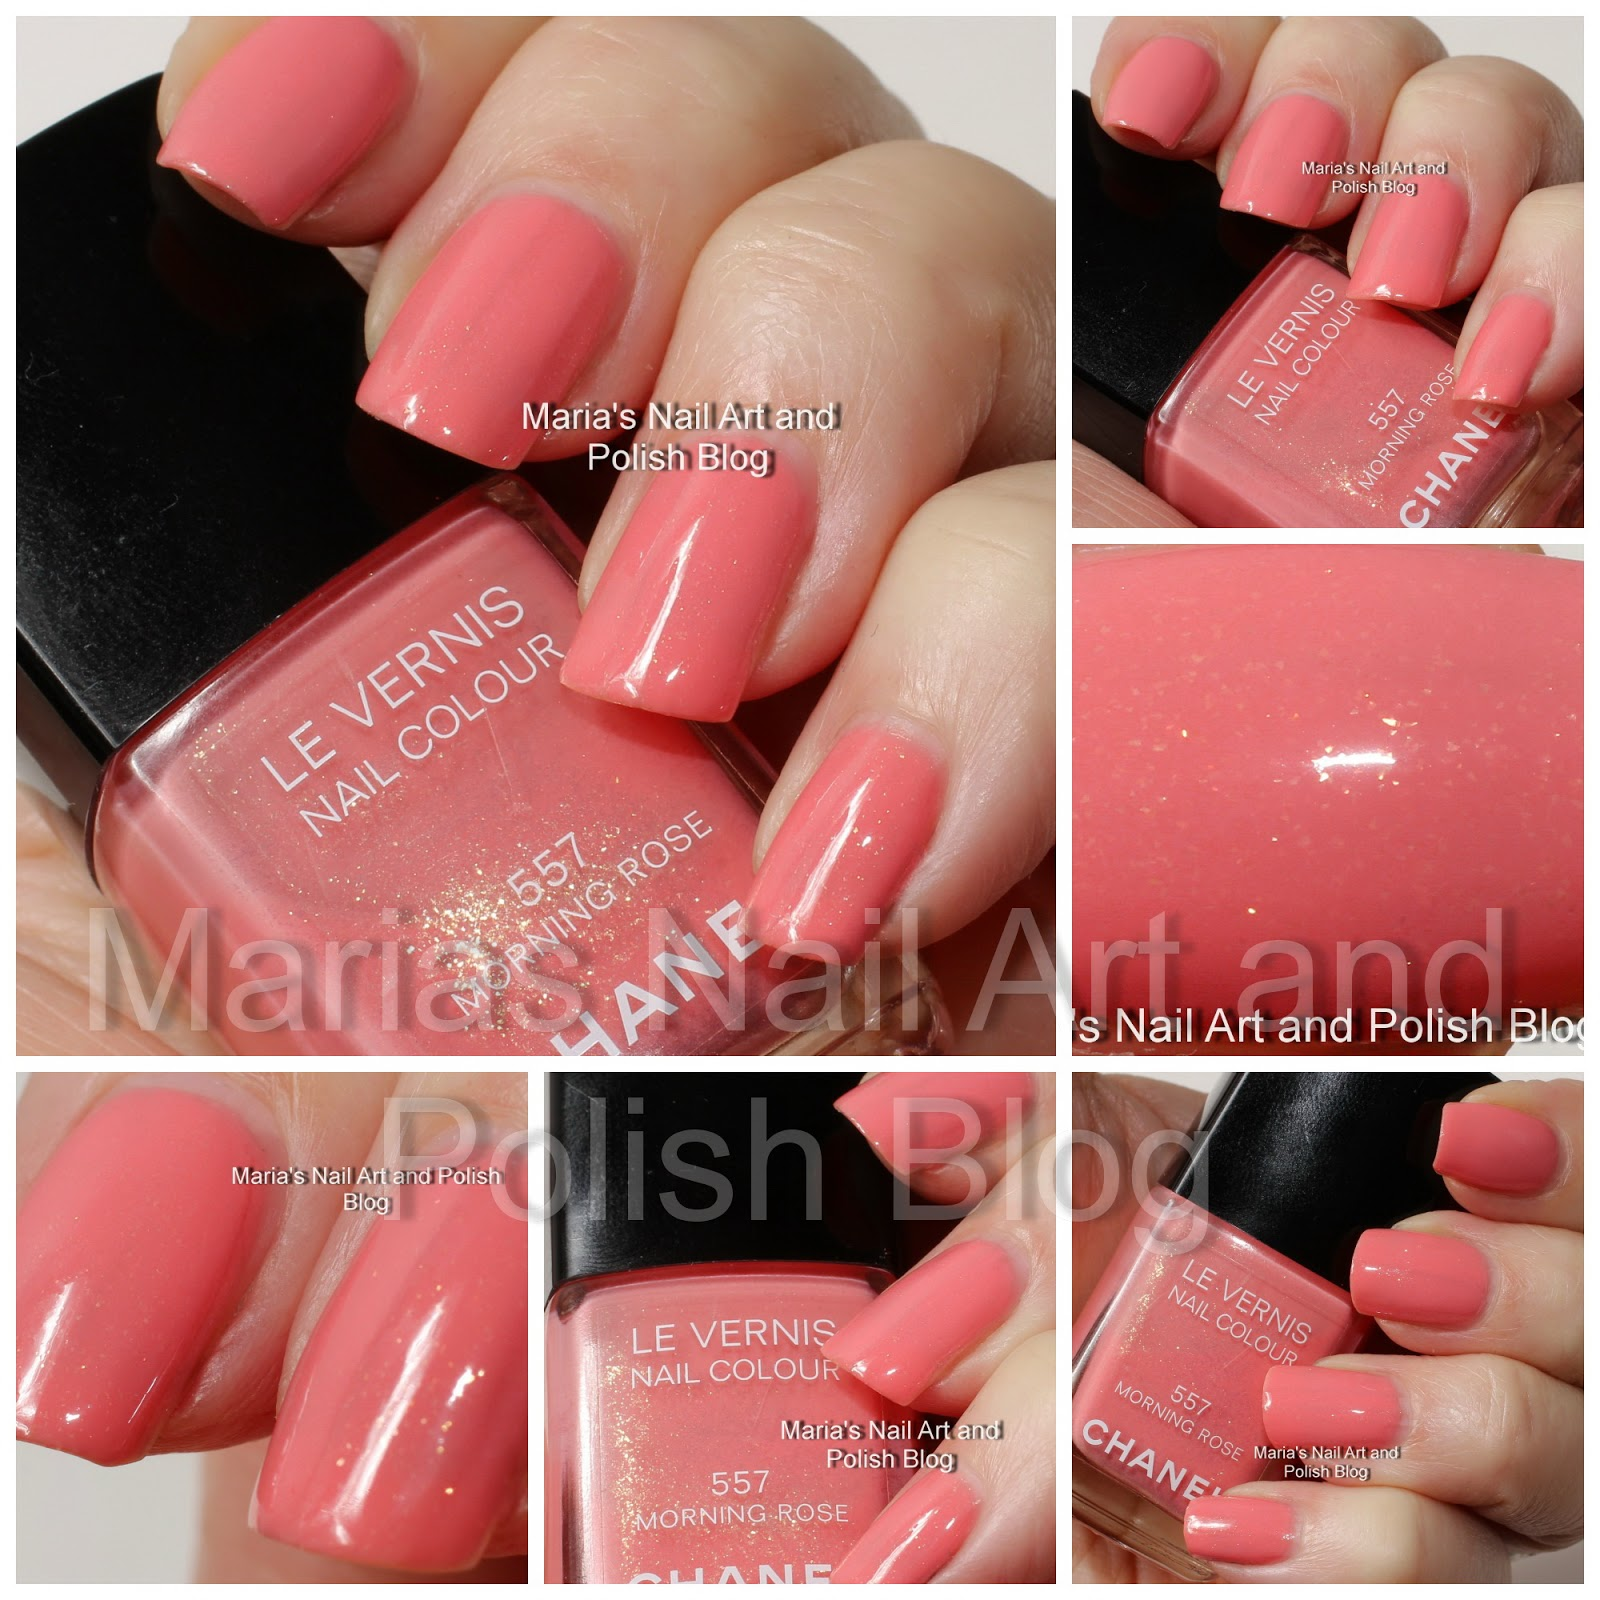 Chanel Morning Rose 557 Les Fleurs d\u0027Ete summer 2011 collection swatches